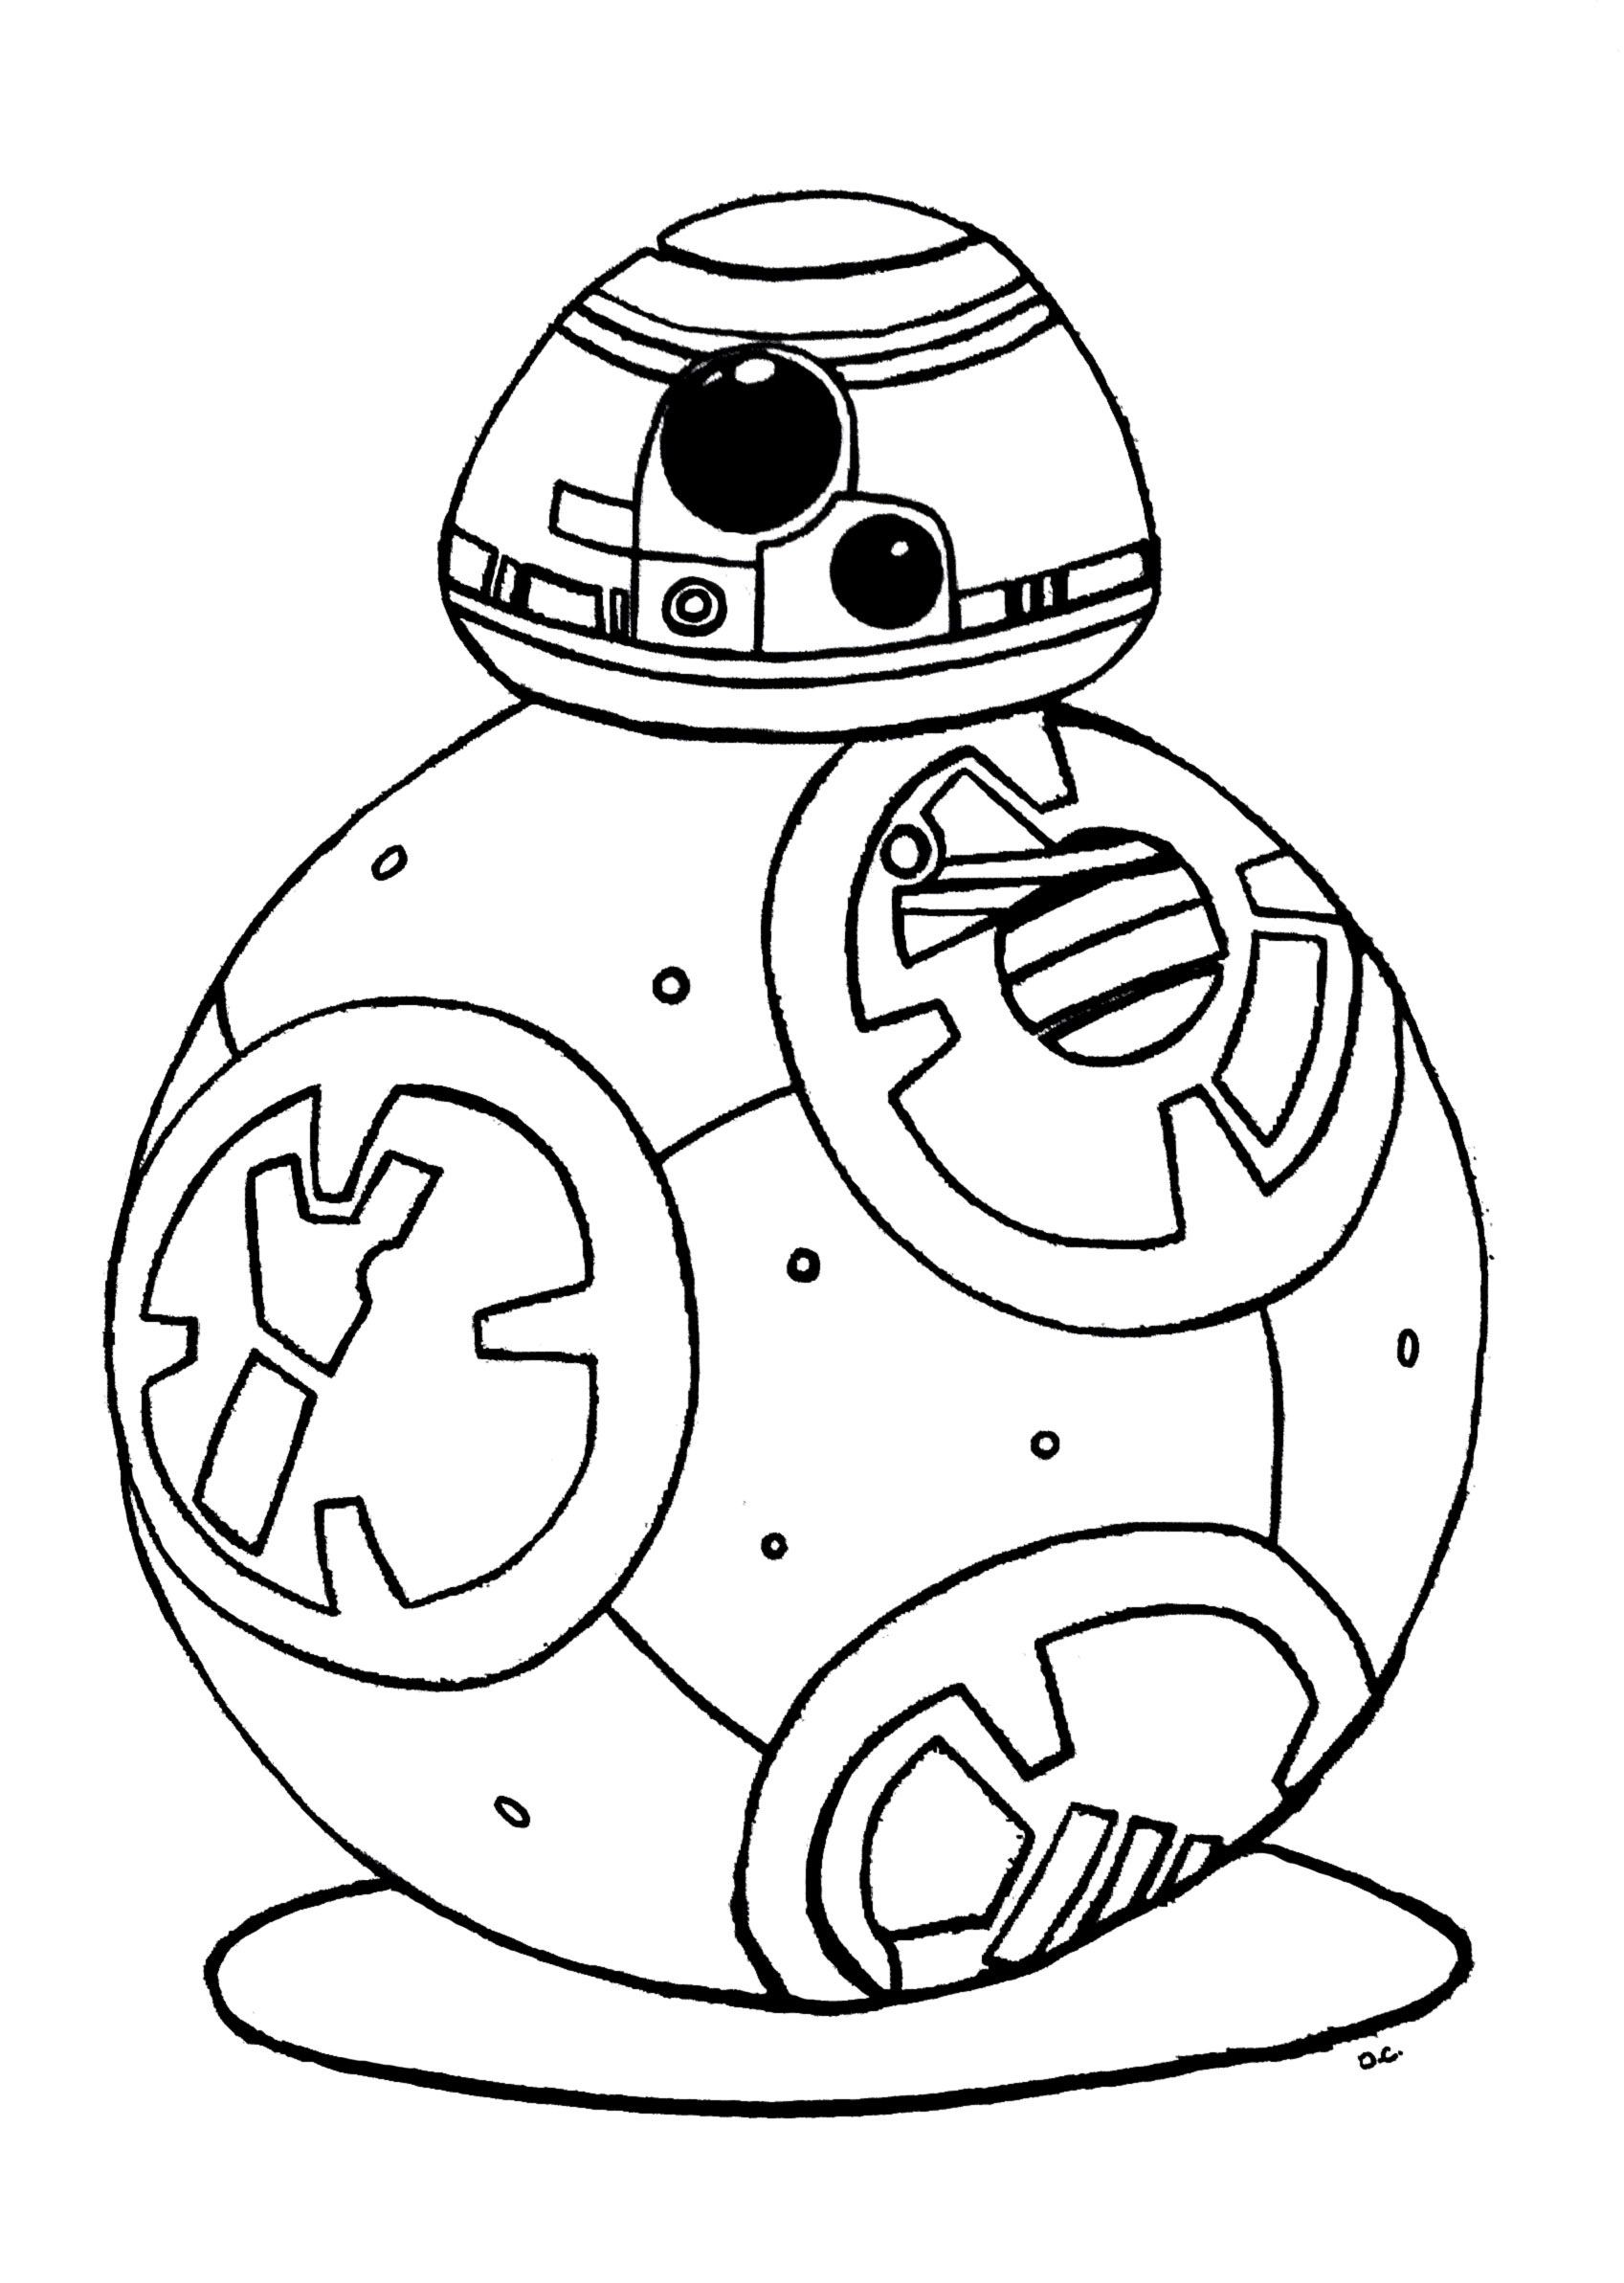 1697x2385 Star Wars Mandala Coloring Pages Best Of Star Wars Stormtrooper